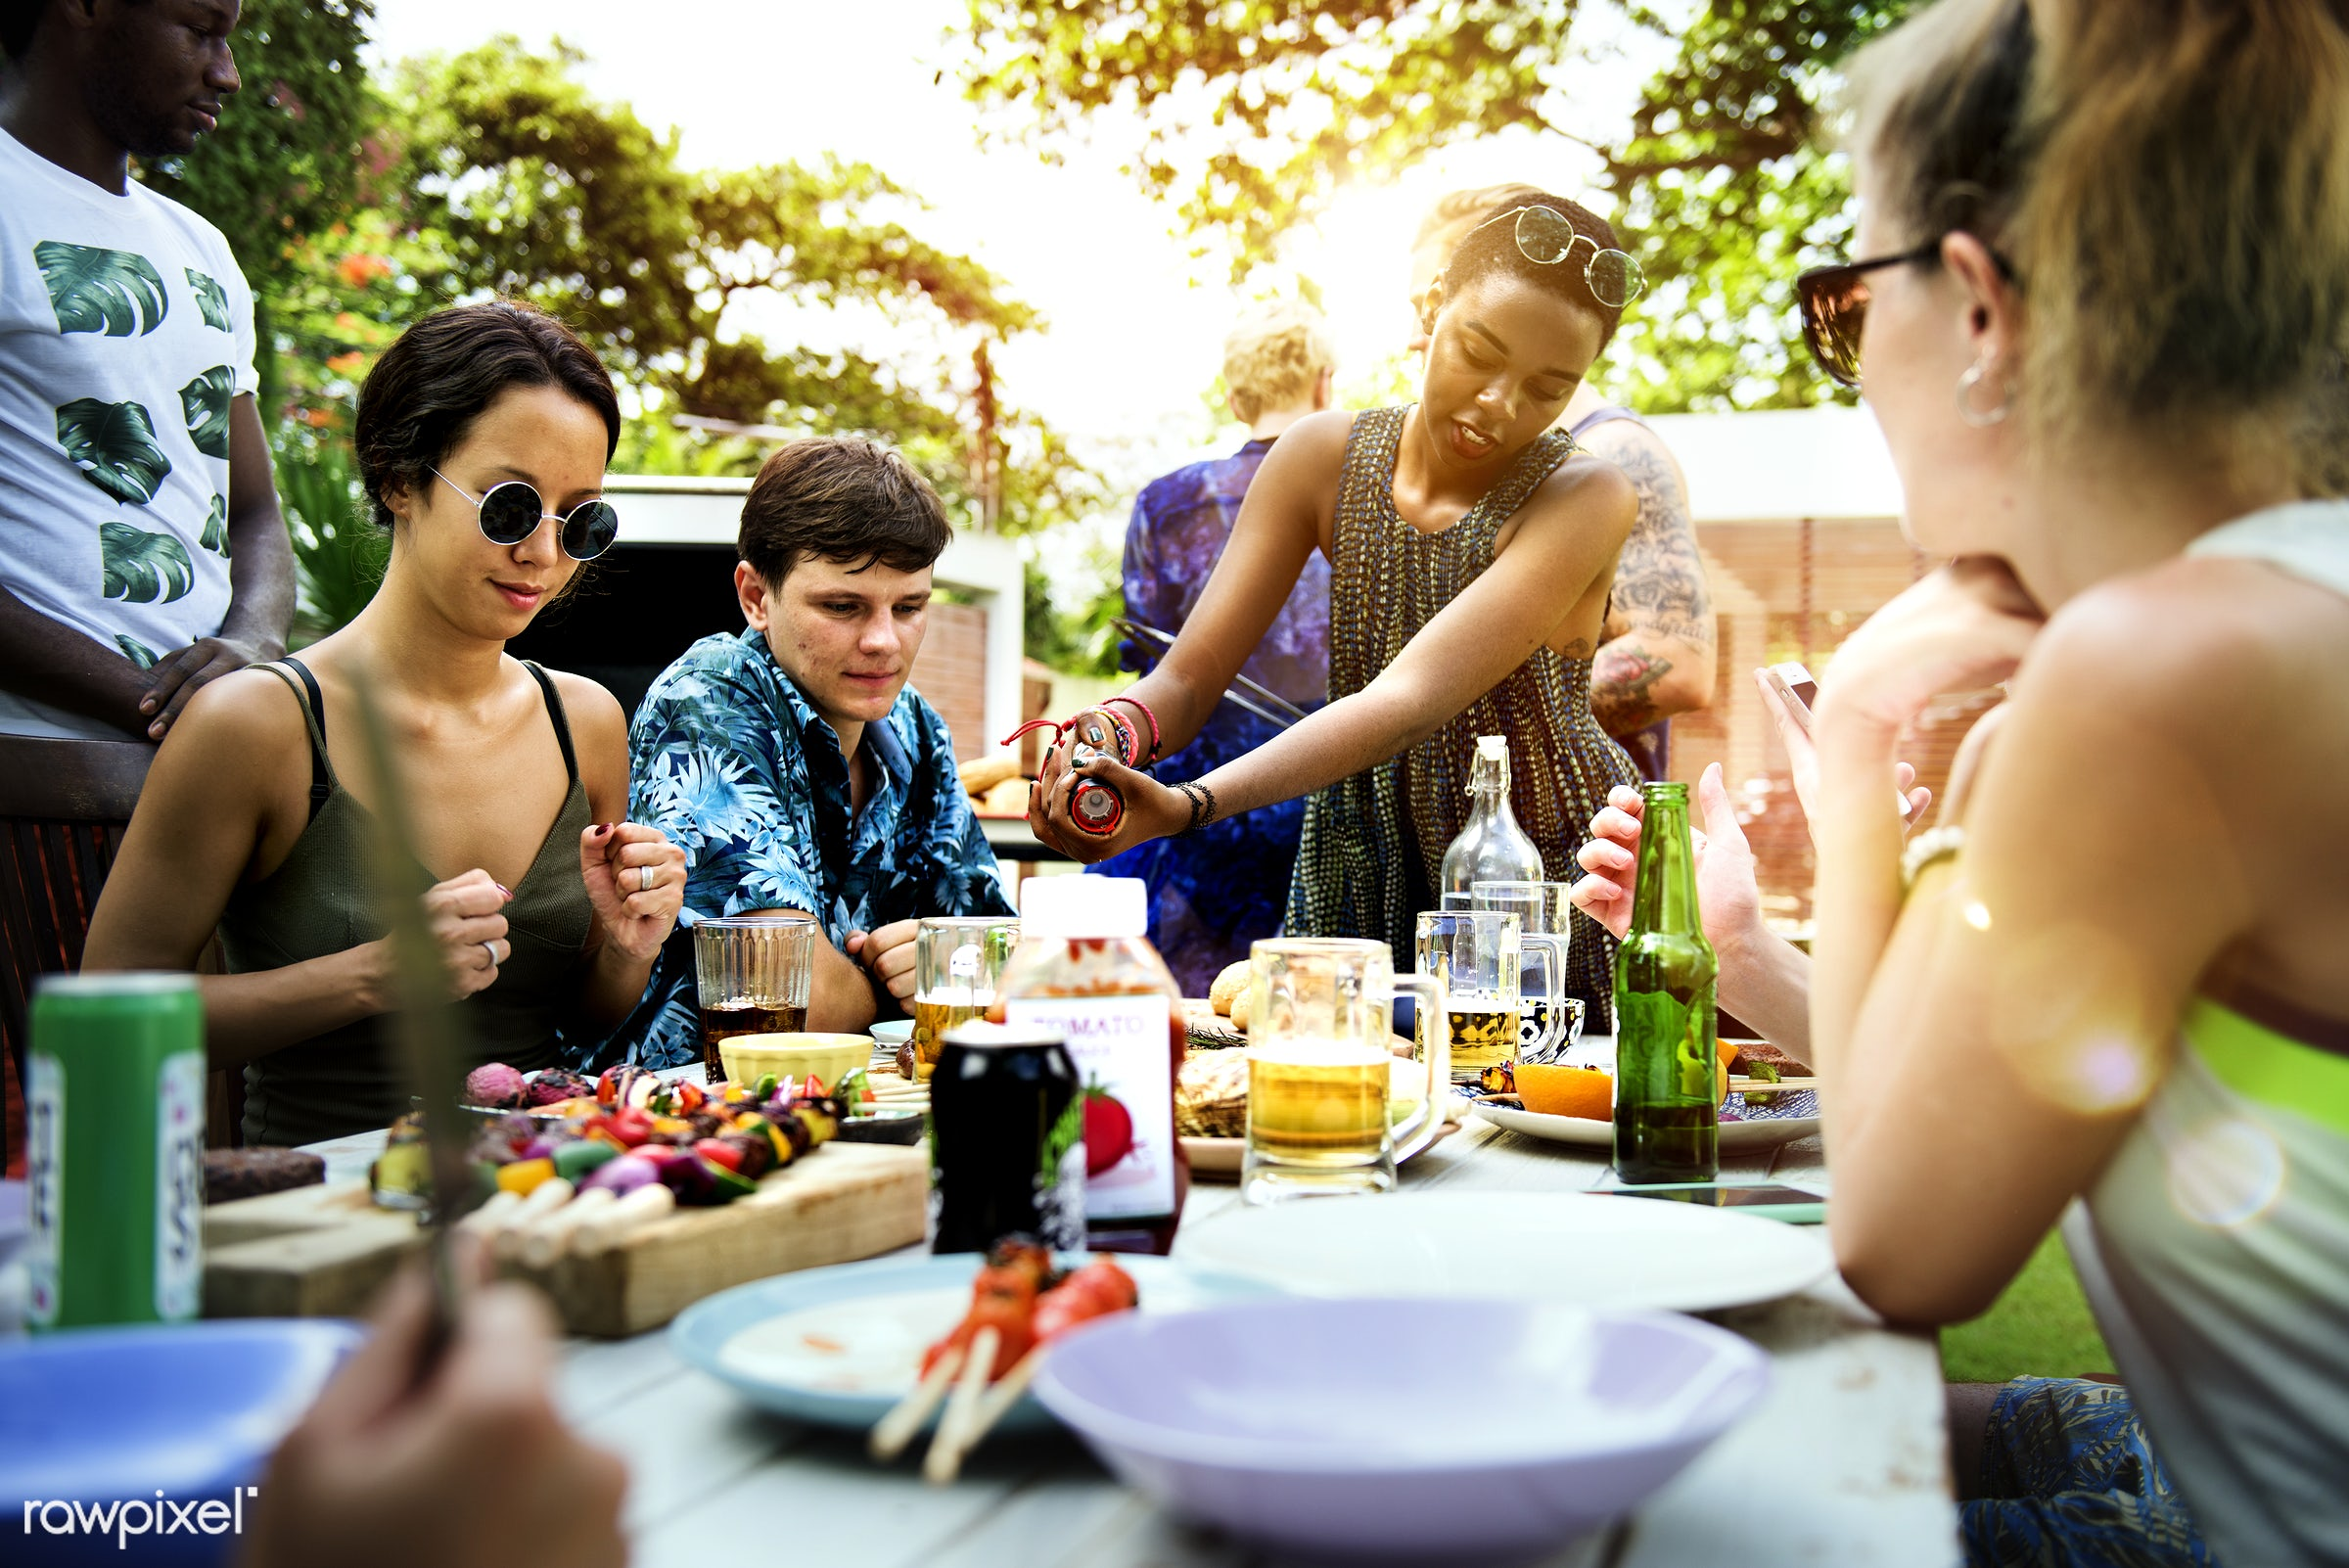 barbecue, barbeque, activities, bbq, charcoal, cheerful, cook, cooking, cookout, food, friendship, grill, grilled, grilling...